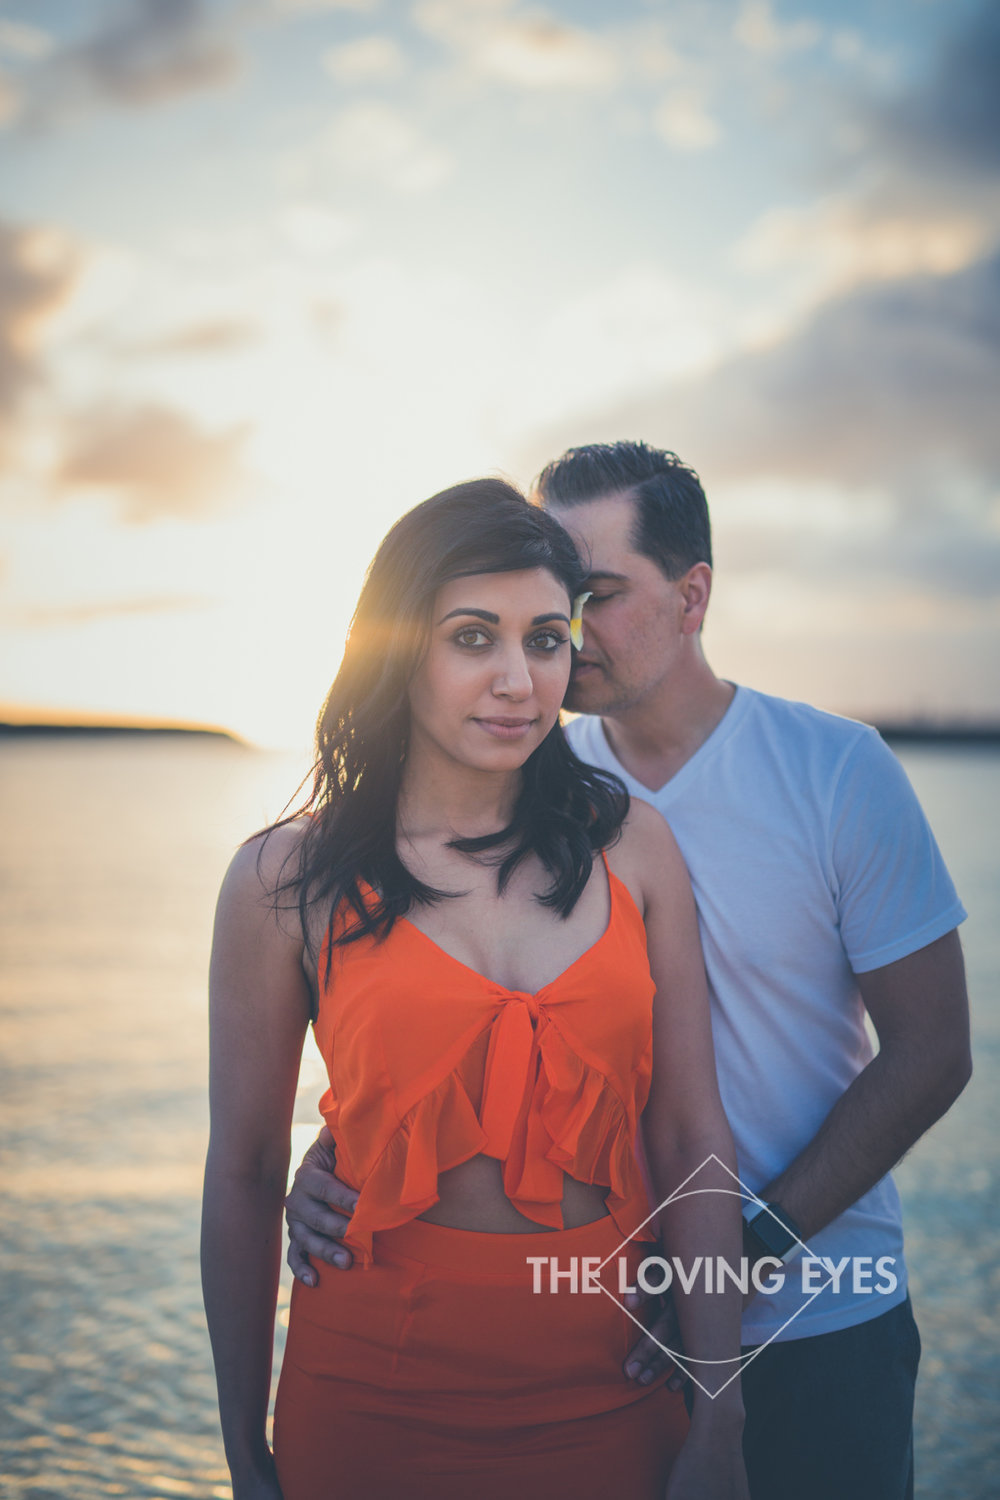 Romantic couple photograph on the beach during sunset at Ala Moana Beach Park